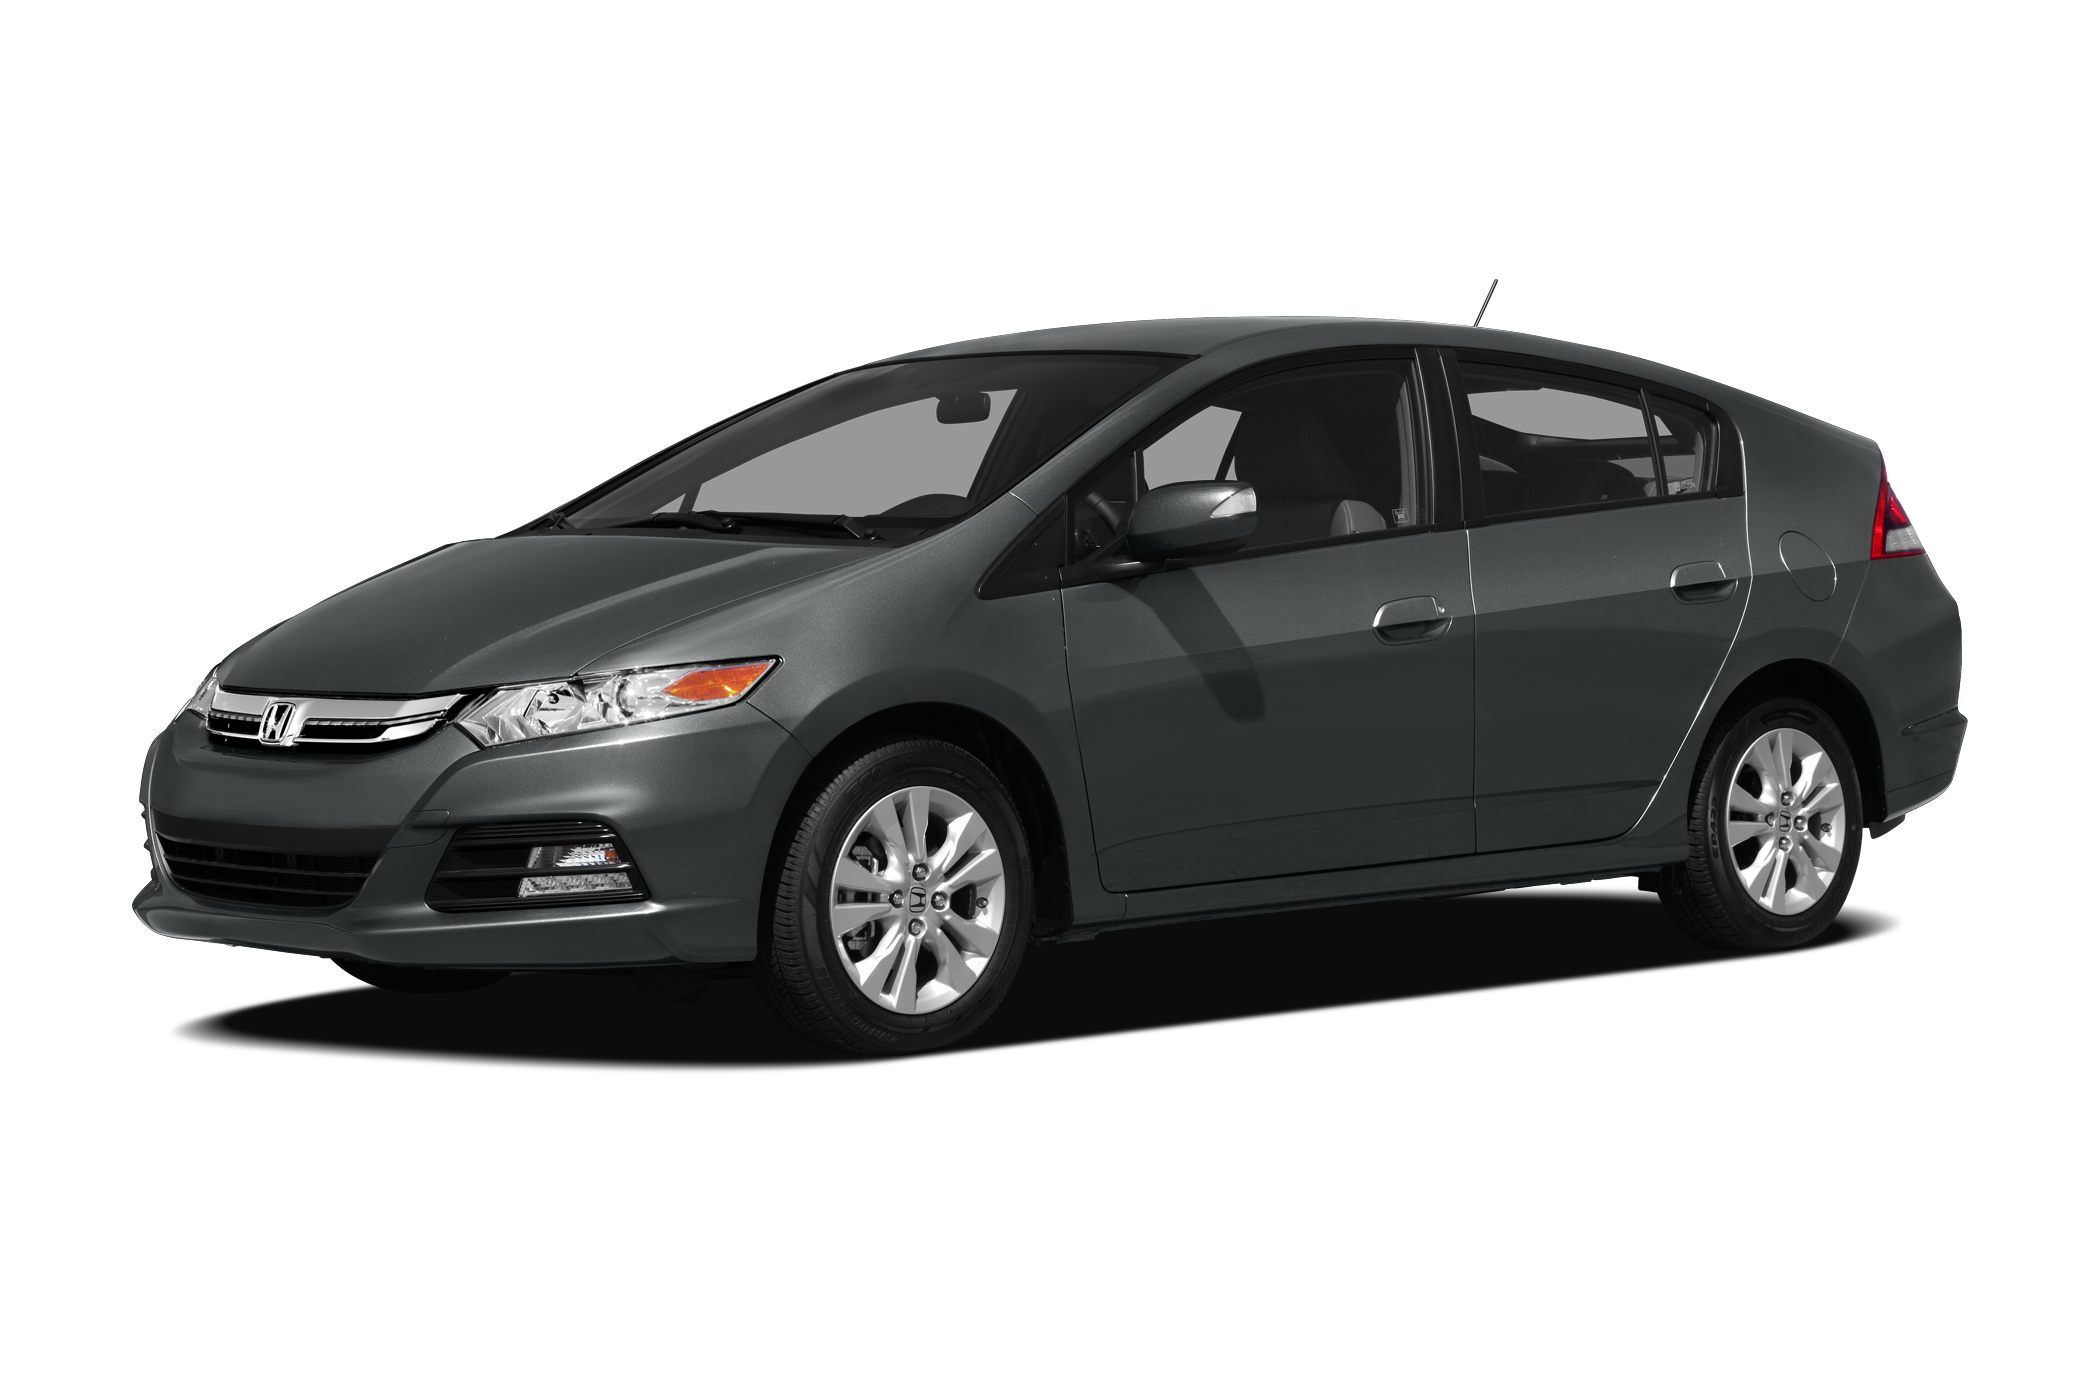 2012 Honda Insight LX Grab a deal on this 2012 Honda Insight LX before someone else snatches it R